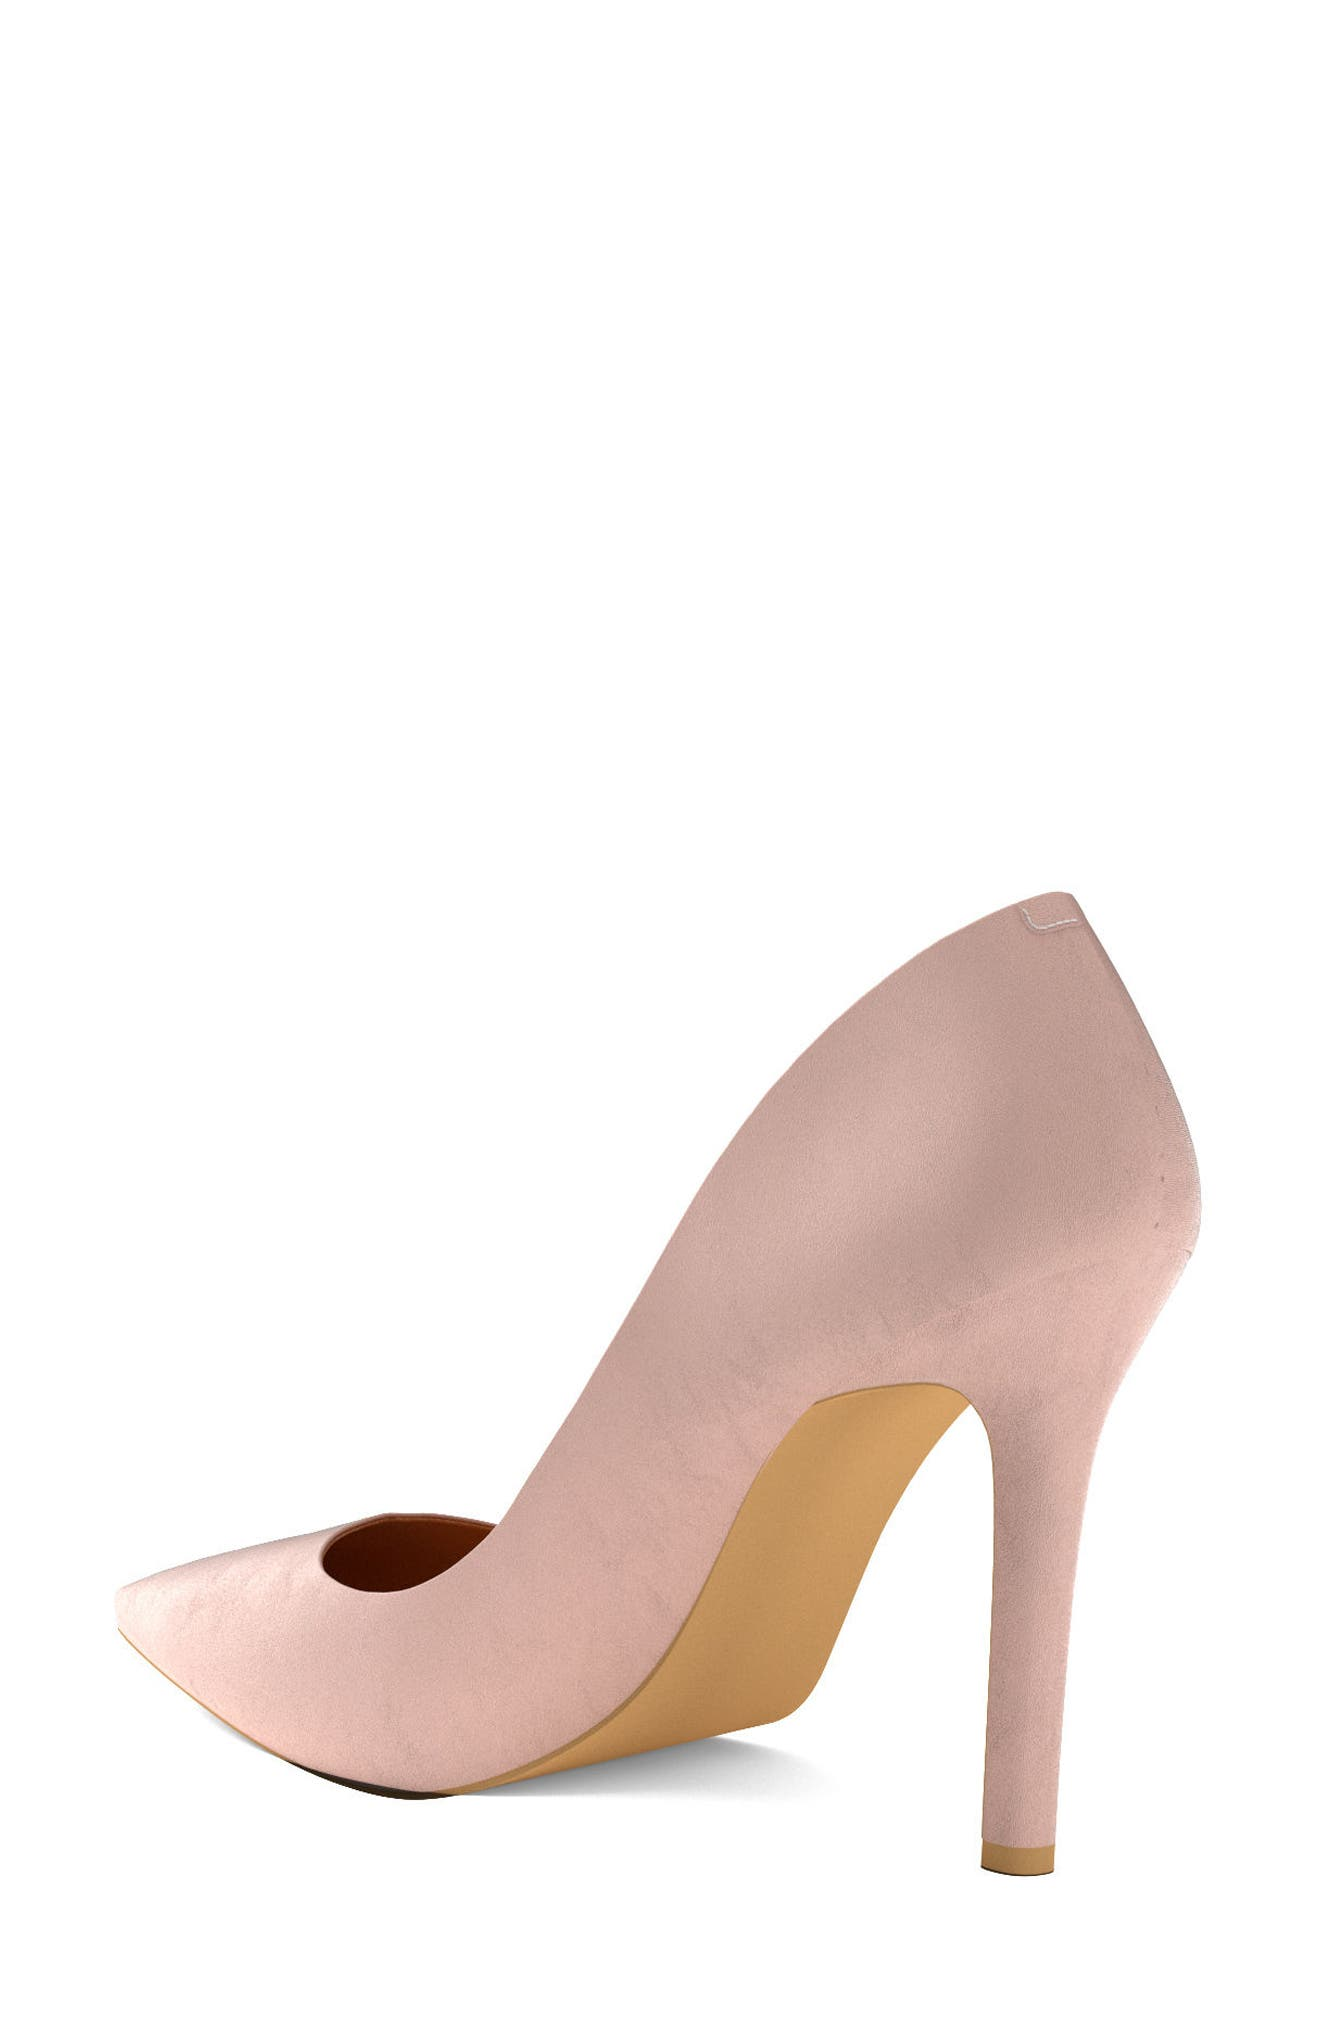 Pointy Toe Pump,                             Alternate thumbnail 2, color,                             651